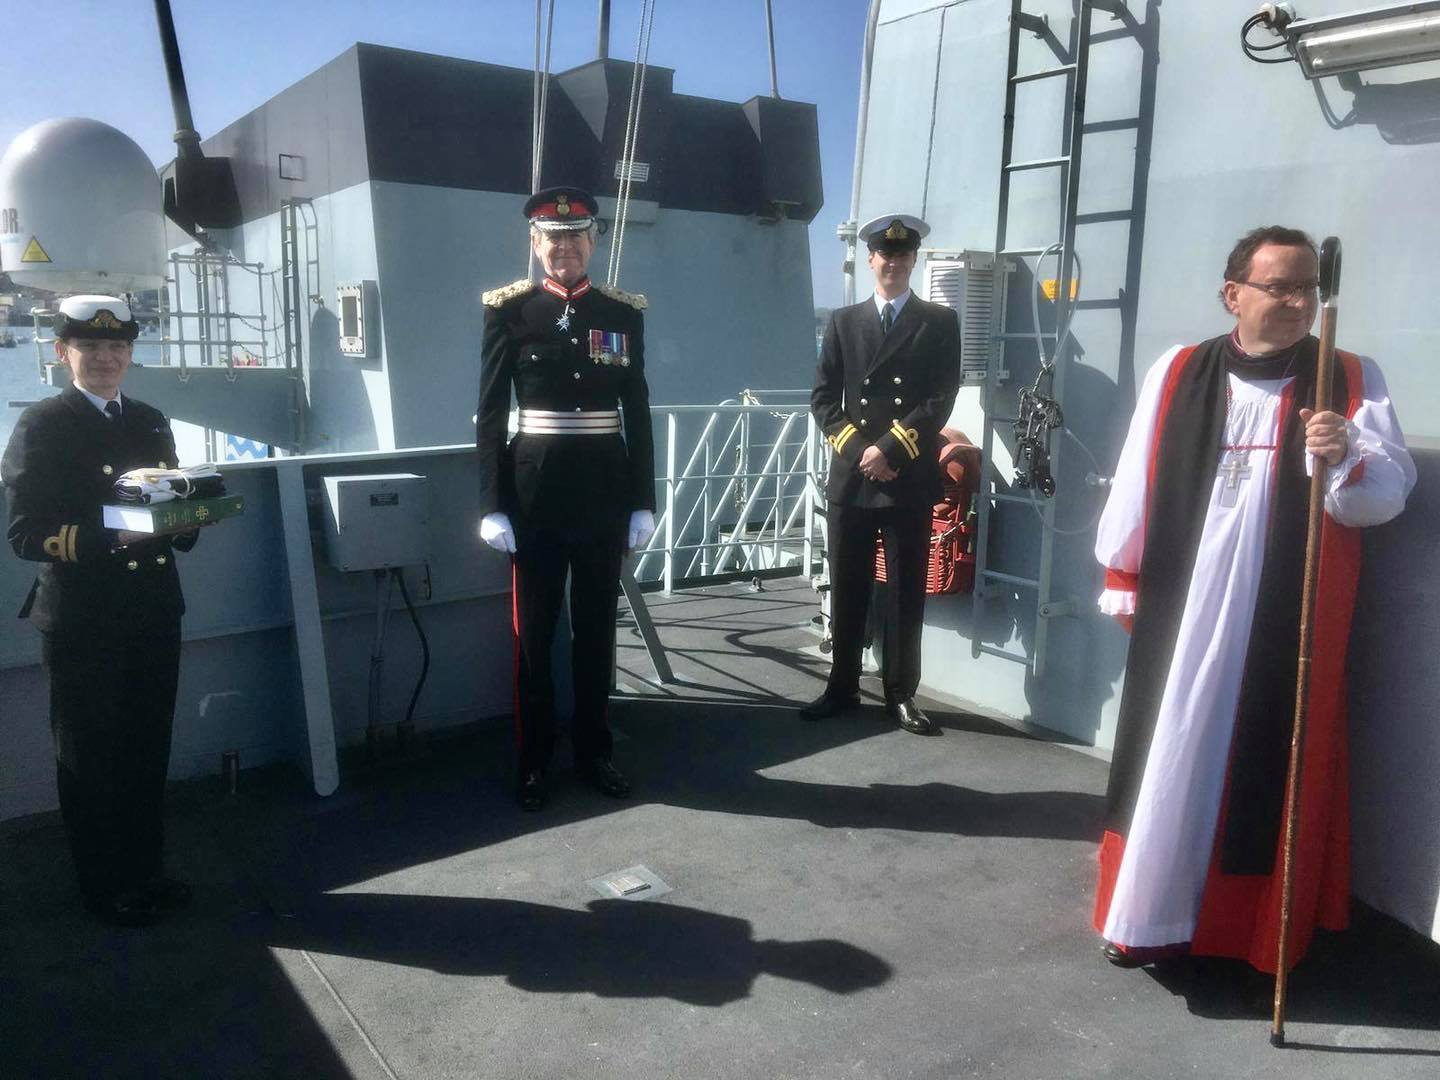 The Bishop of Truro Rt Rev Philip Mounstephen boarded the ship along with Lord Lieutenant of Cornwall, Colonel Edward Bolitho. Picture: HM Naval Base Devonport